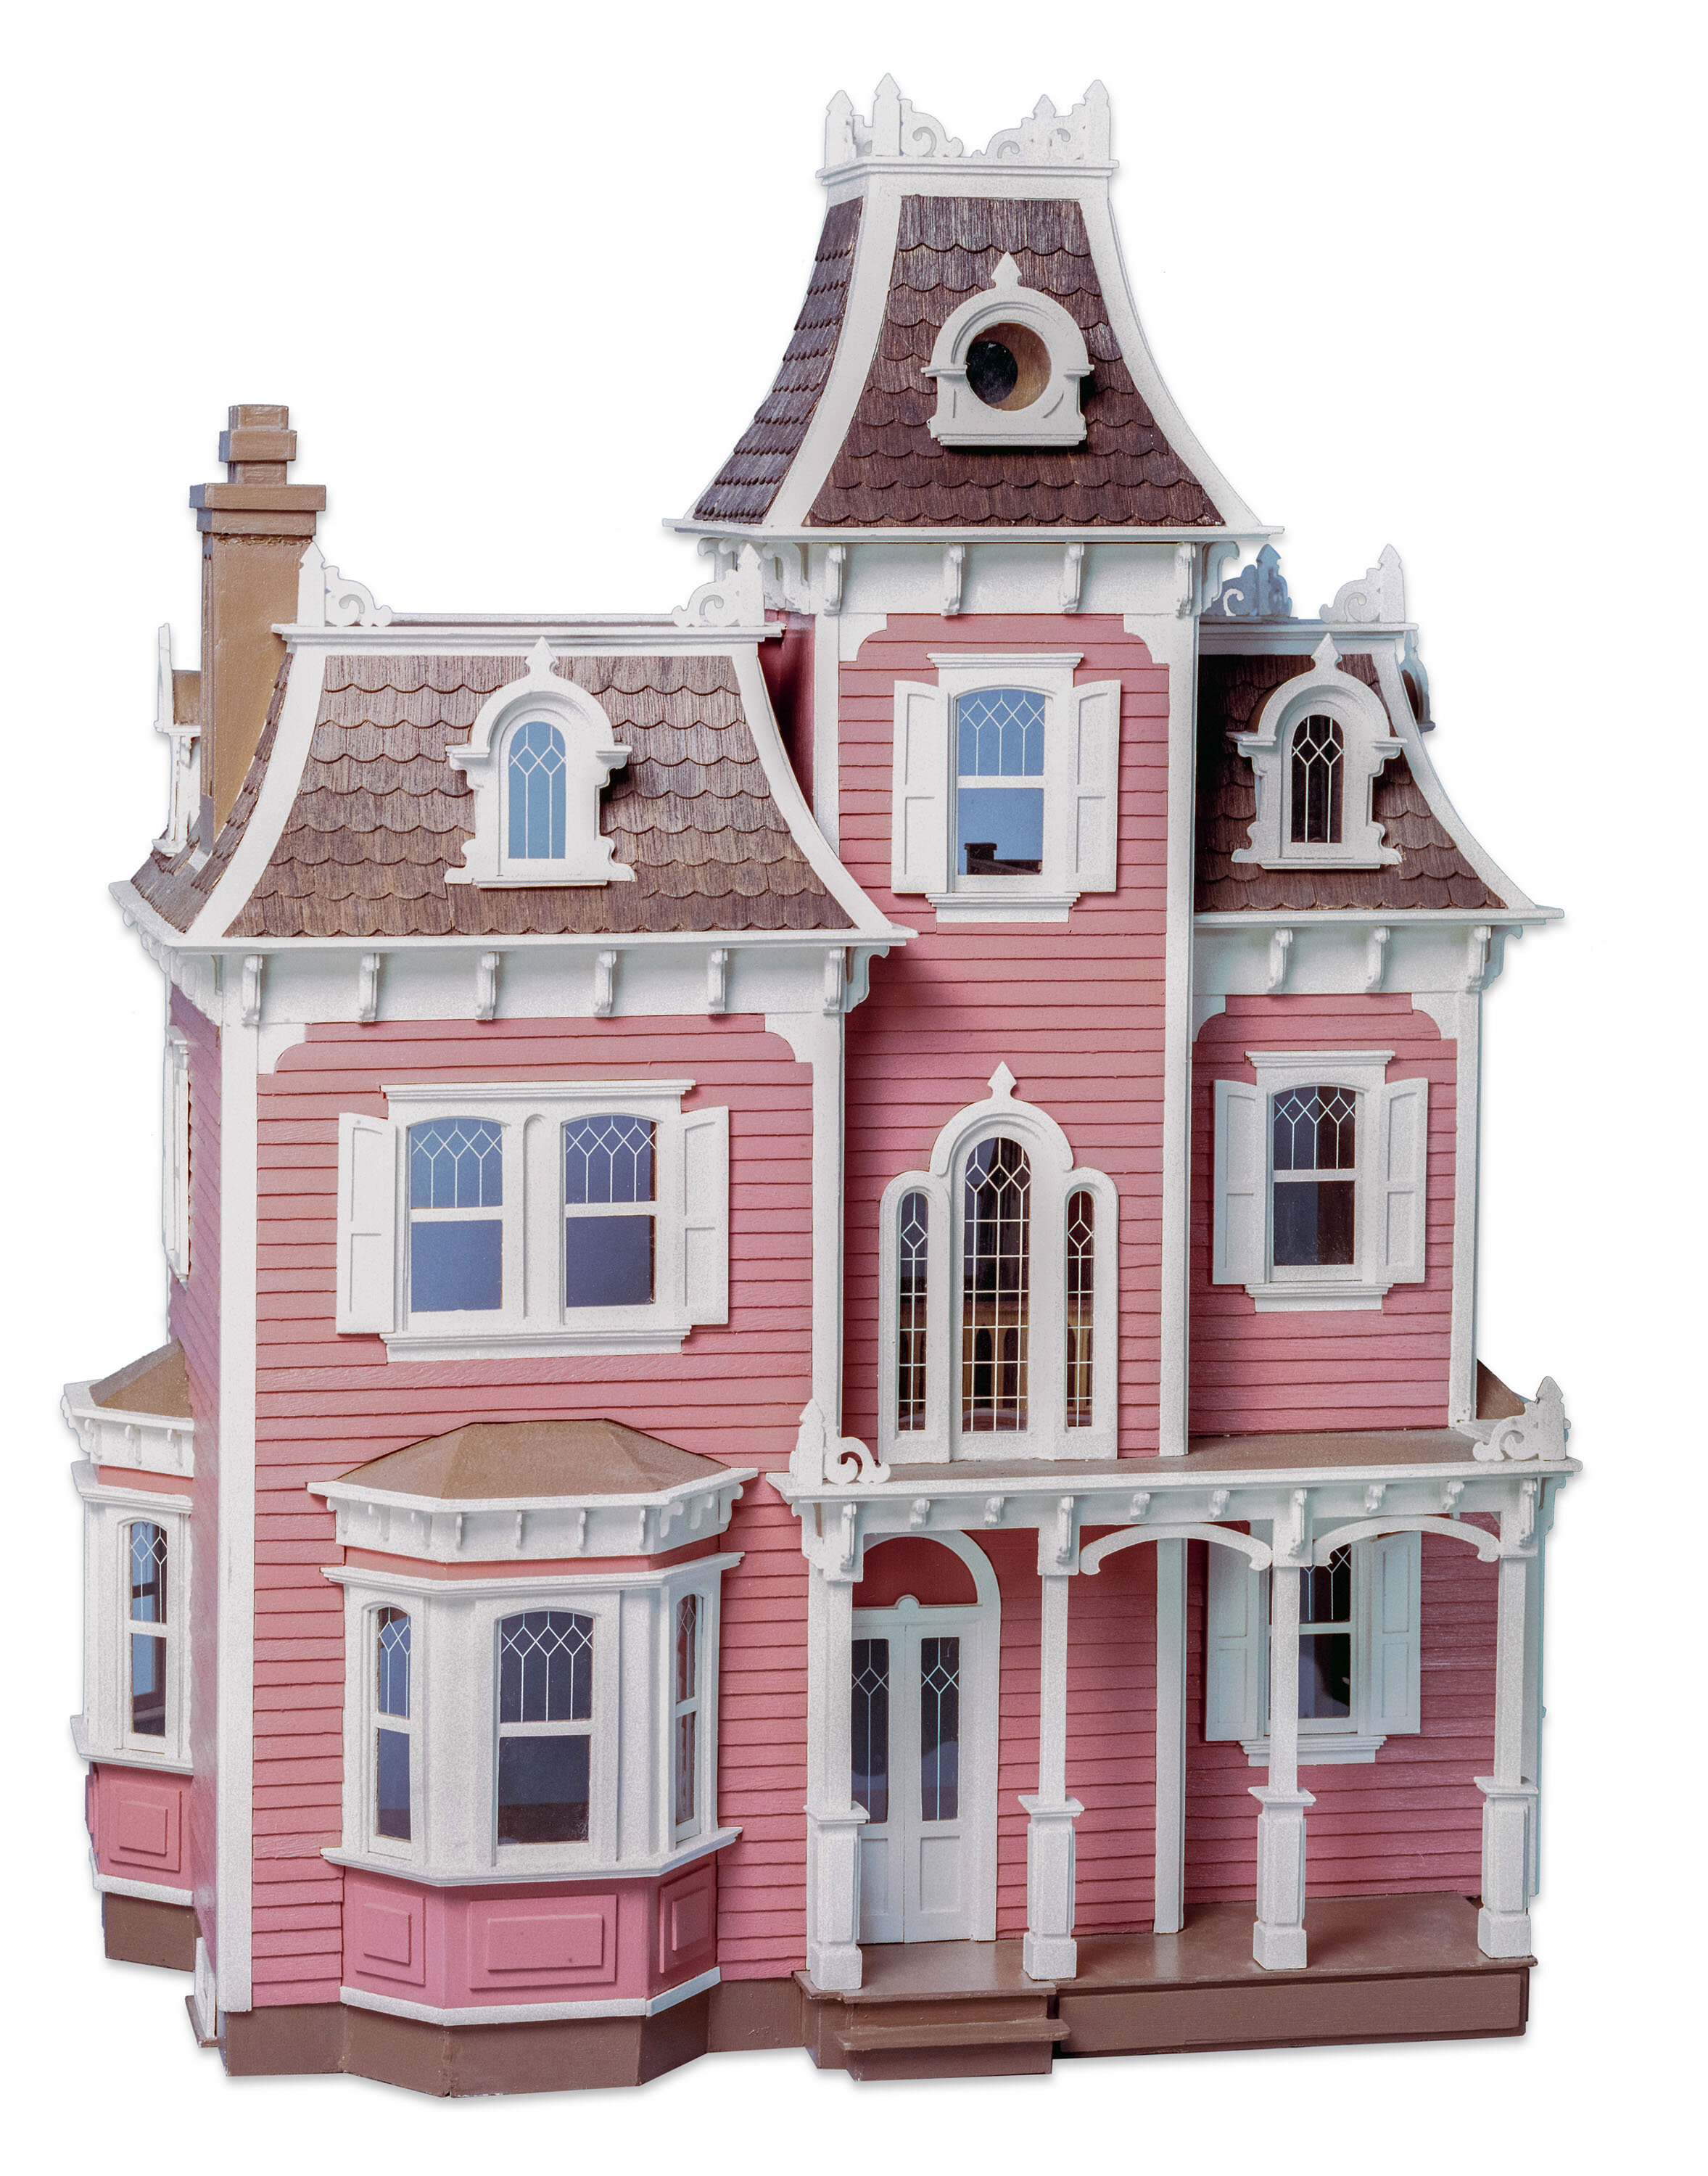 MADE IN USA FOLK ART GIRL 1:24 Half Scale Dollhouse Picture FAST DELIVERY